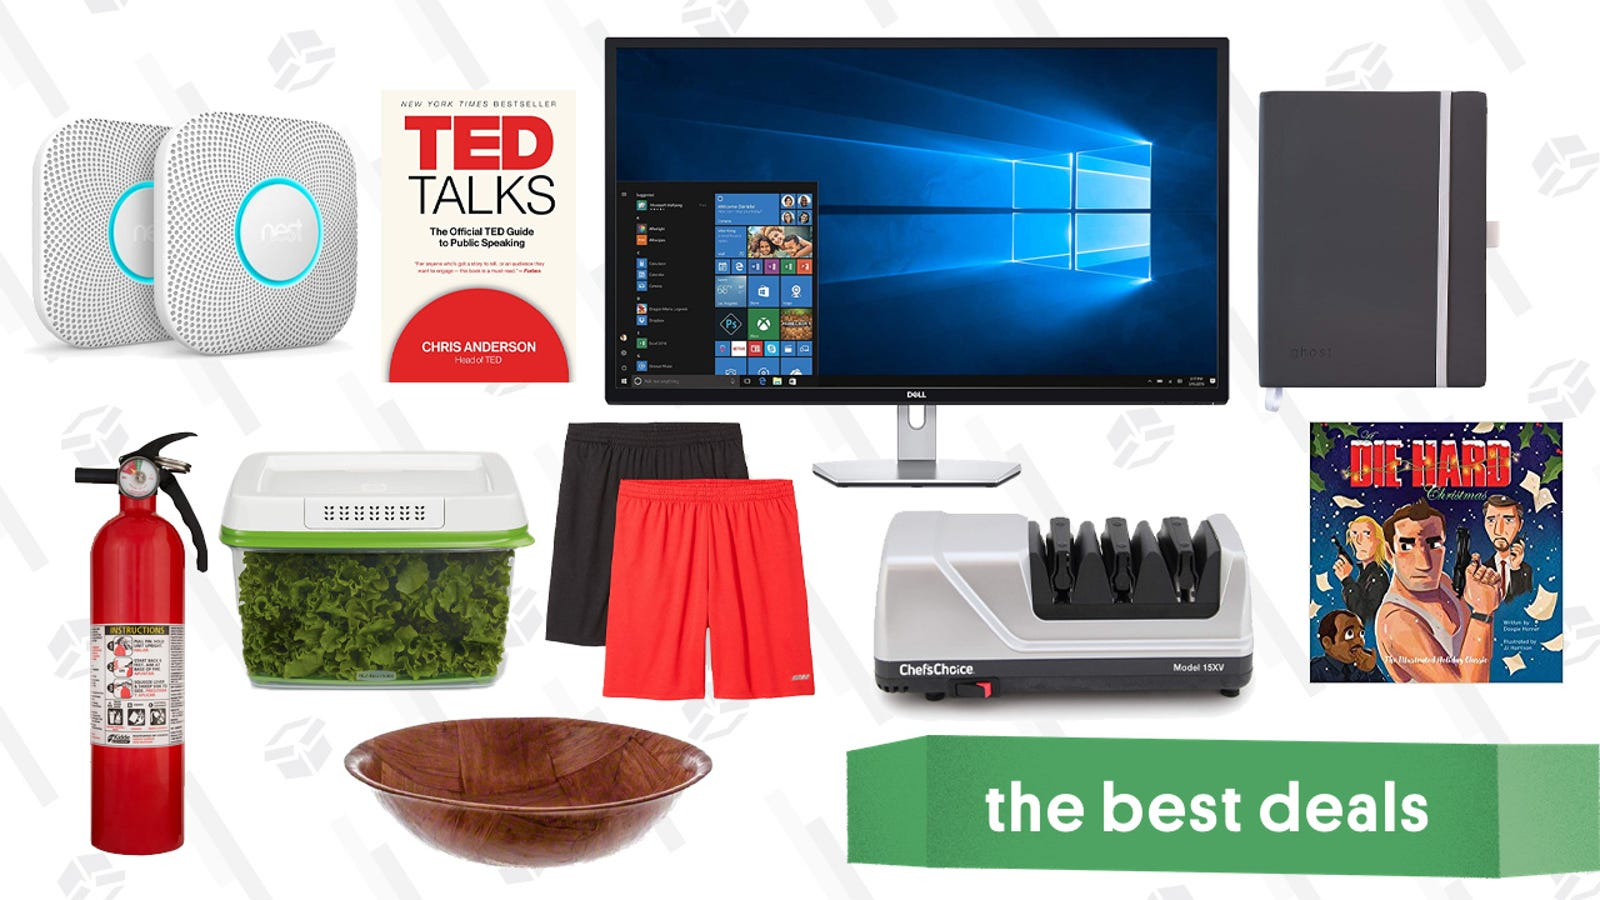 Thursday's Best Deals: Dell QHD Monitor, Home Depot Fire Safety, Athletic Shorts, and More